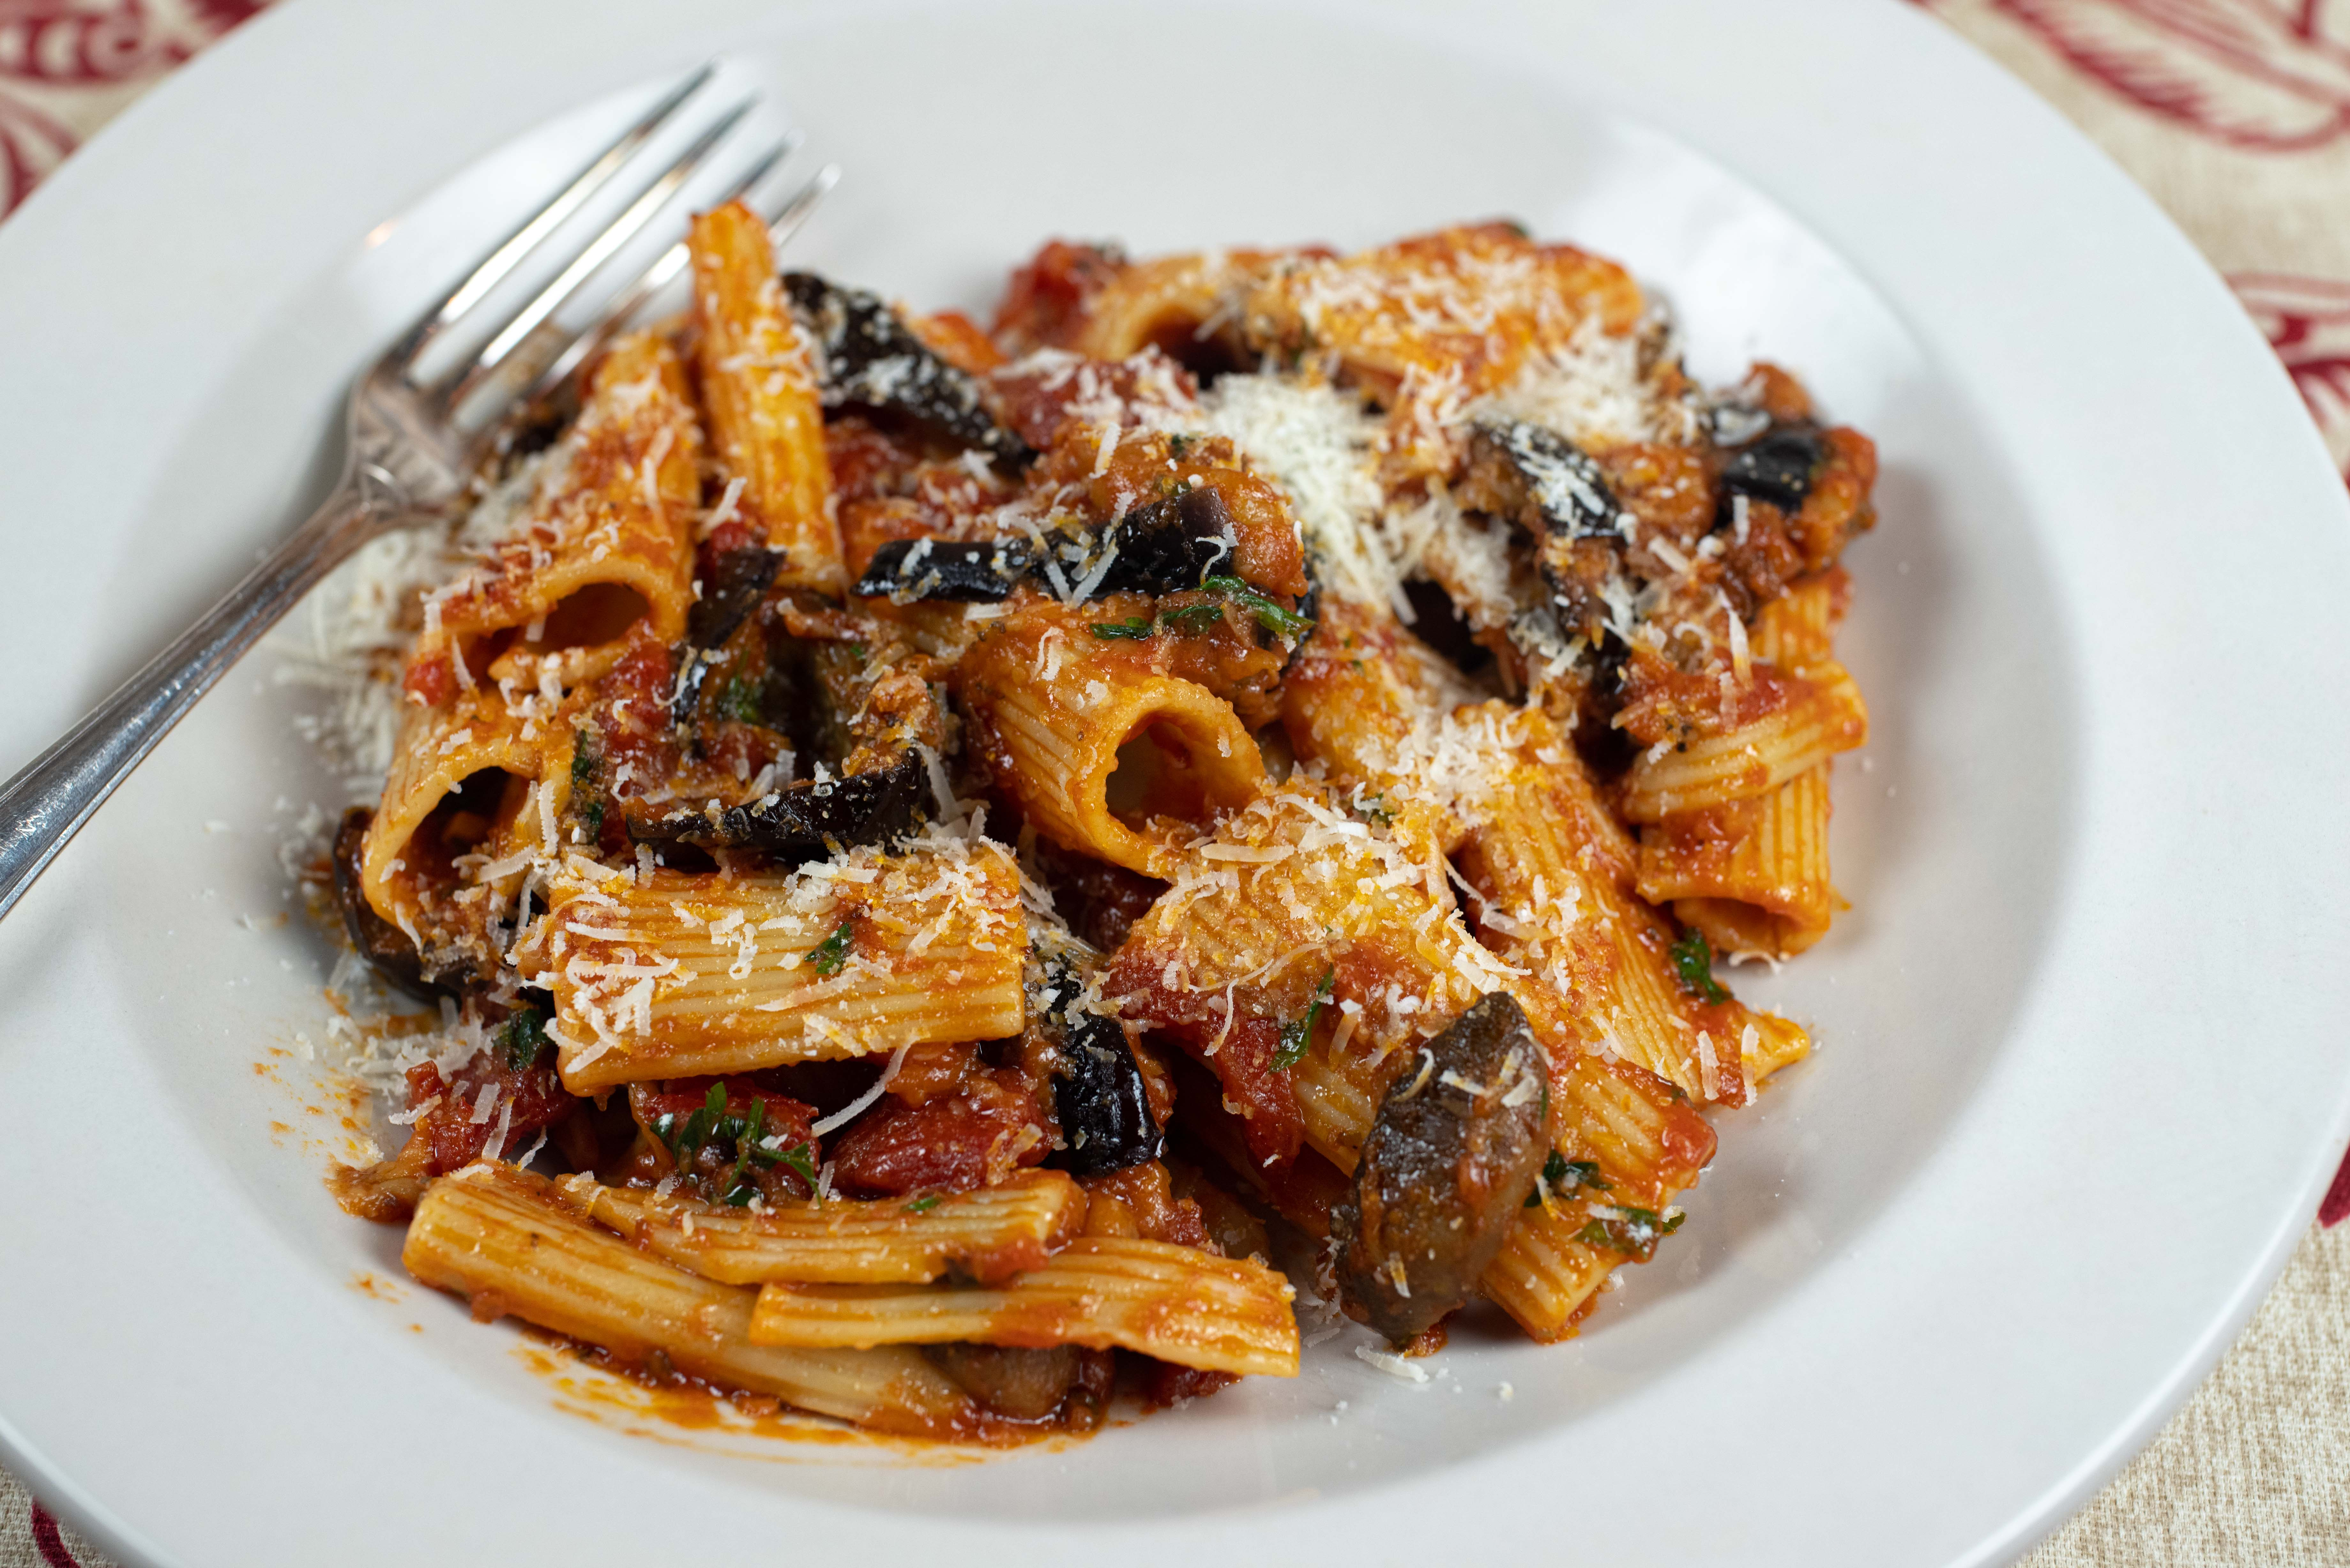 Classic Pasta alla Norma: a dish for opera and eggplant lovers alike